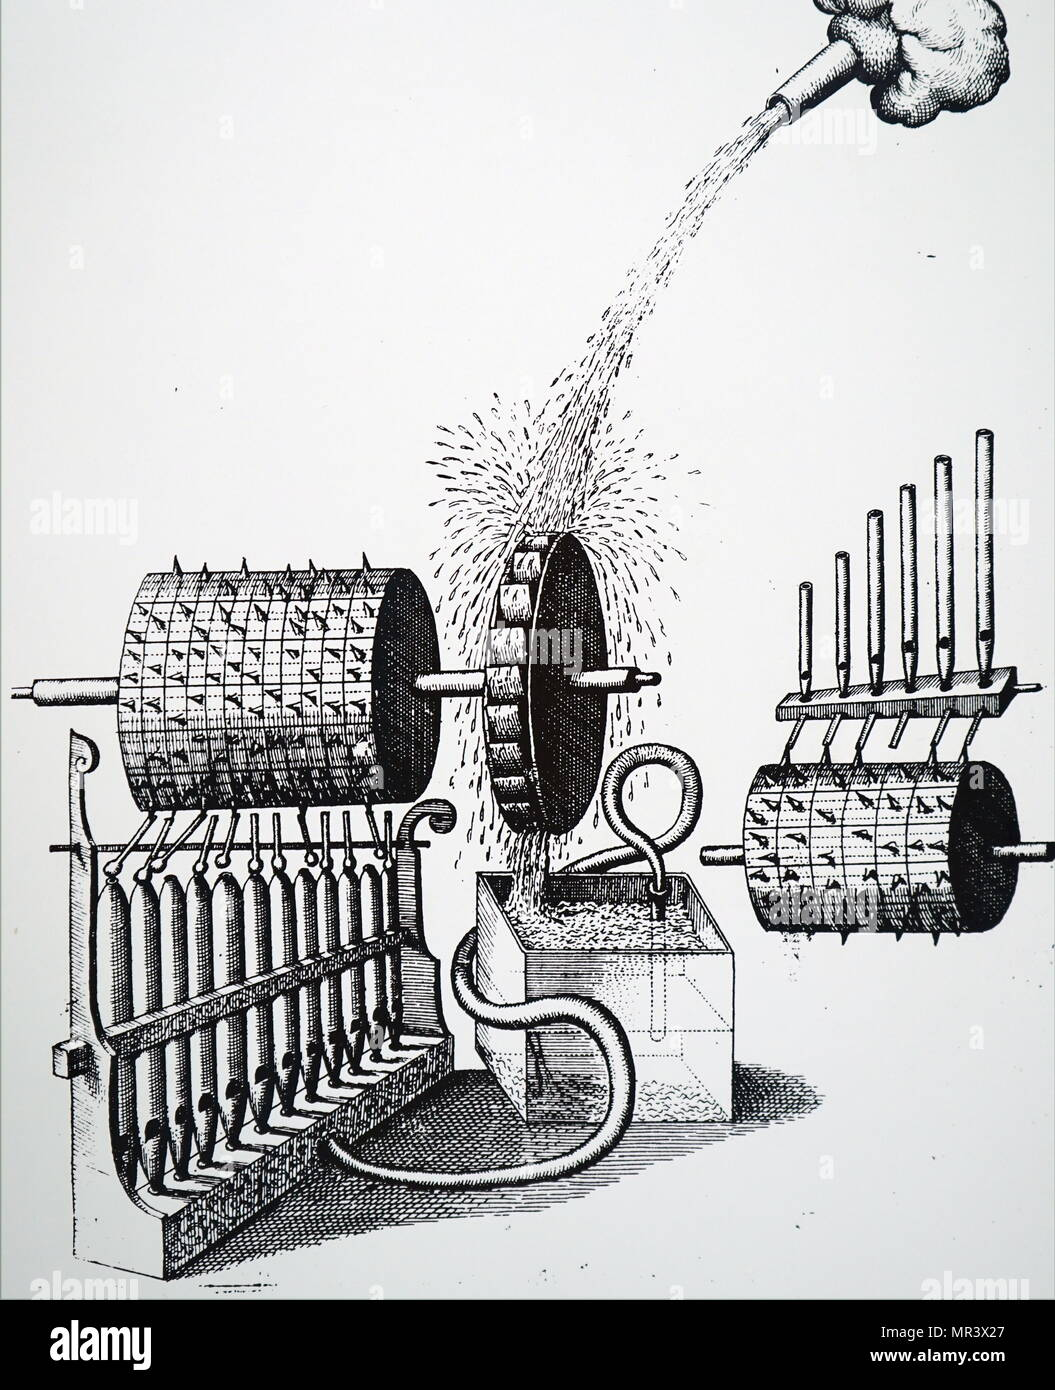 Water Powered Pipe Organ Stock Photos & Water Powered Pipe Organ